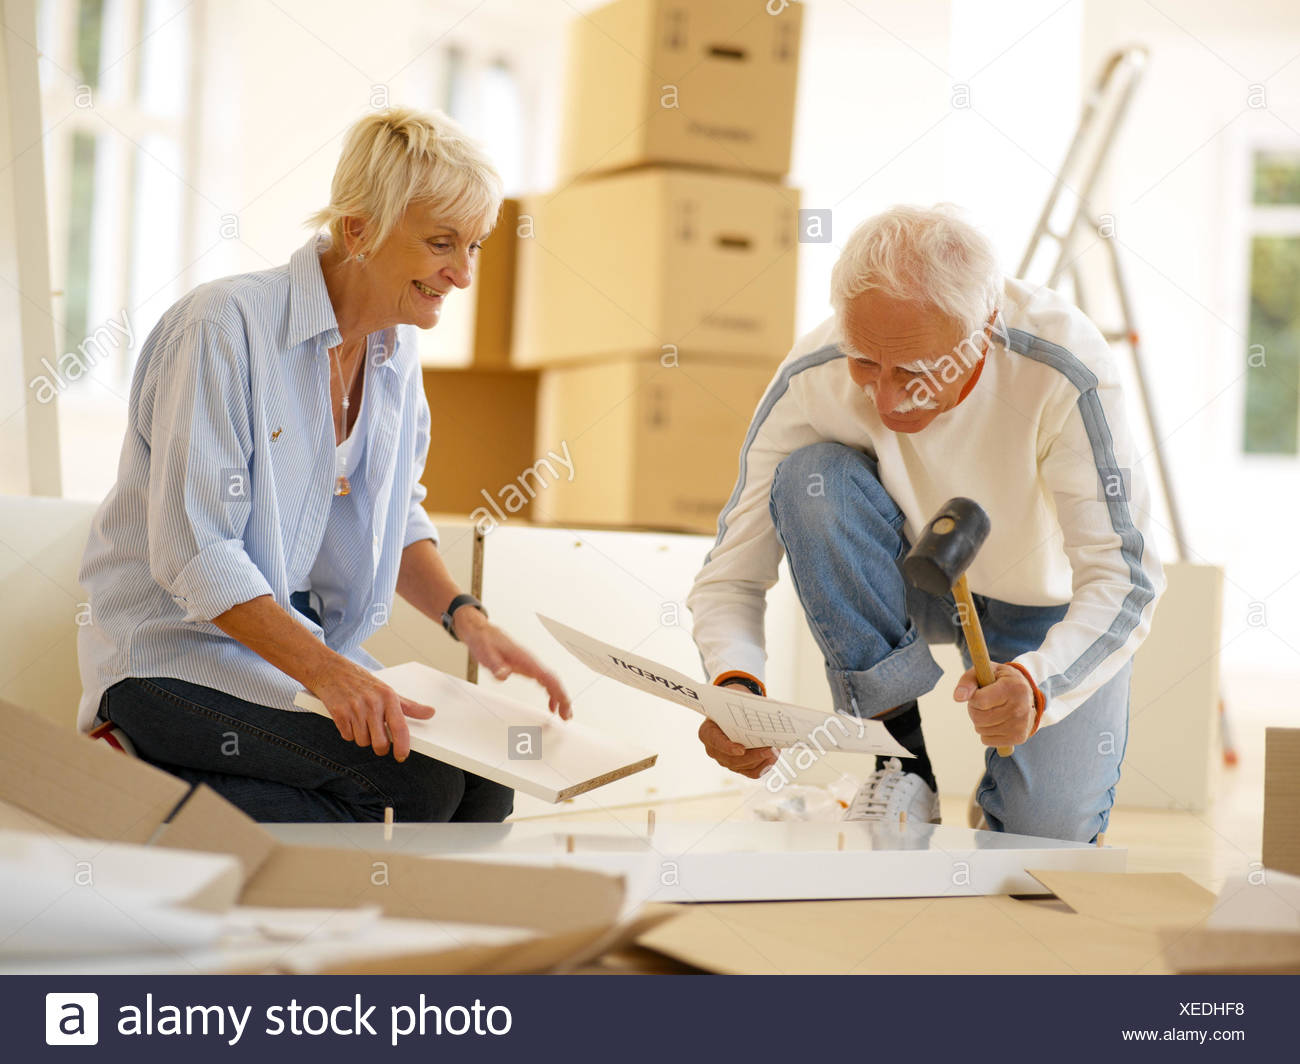 Procession, Senior couple, St. furniture, assemble, concentration, 60-70 years, senior citizens, couple, flat change, move, cupboard, build up, assembly, instructions, construction instructions, read, do-it-yourselfers, do it yourself, together, Teamwork, - Stock Image